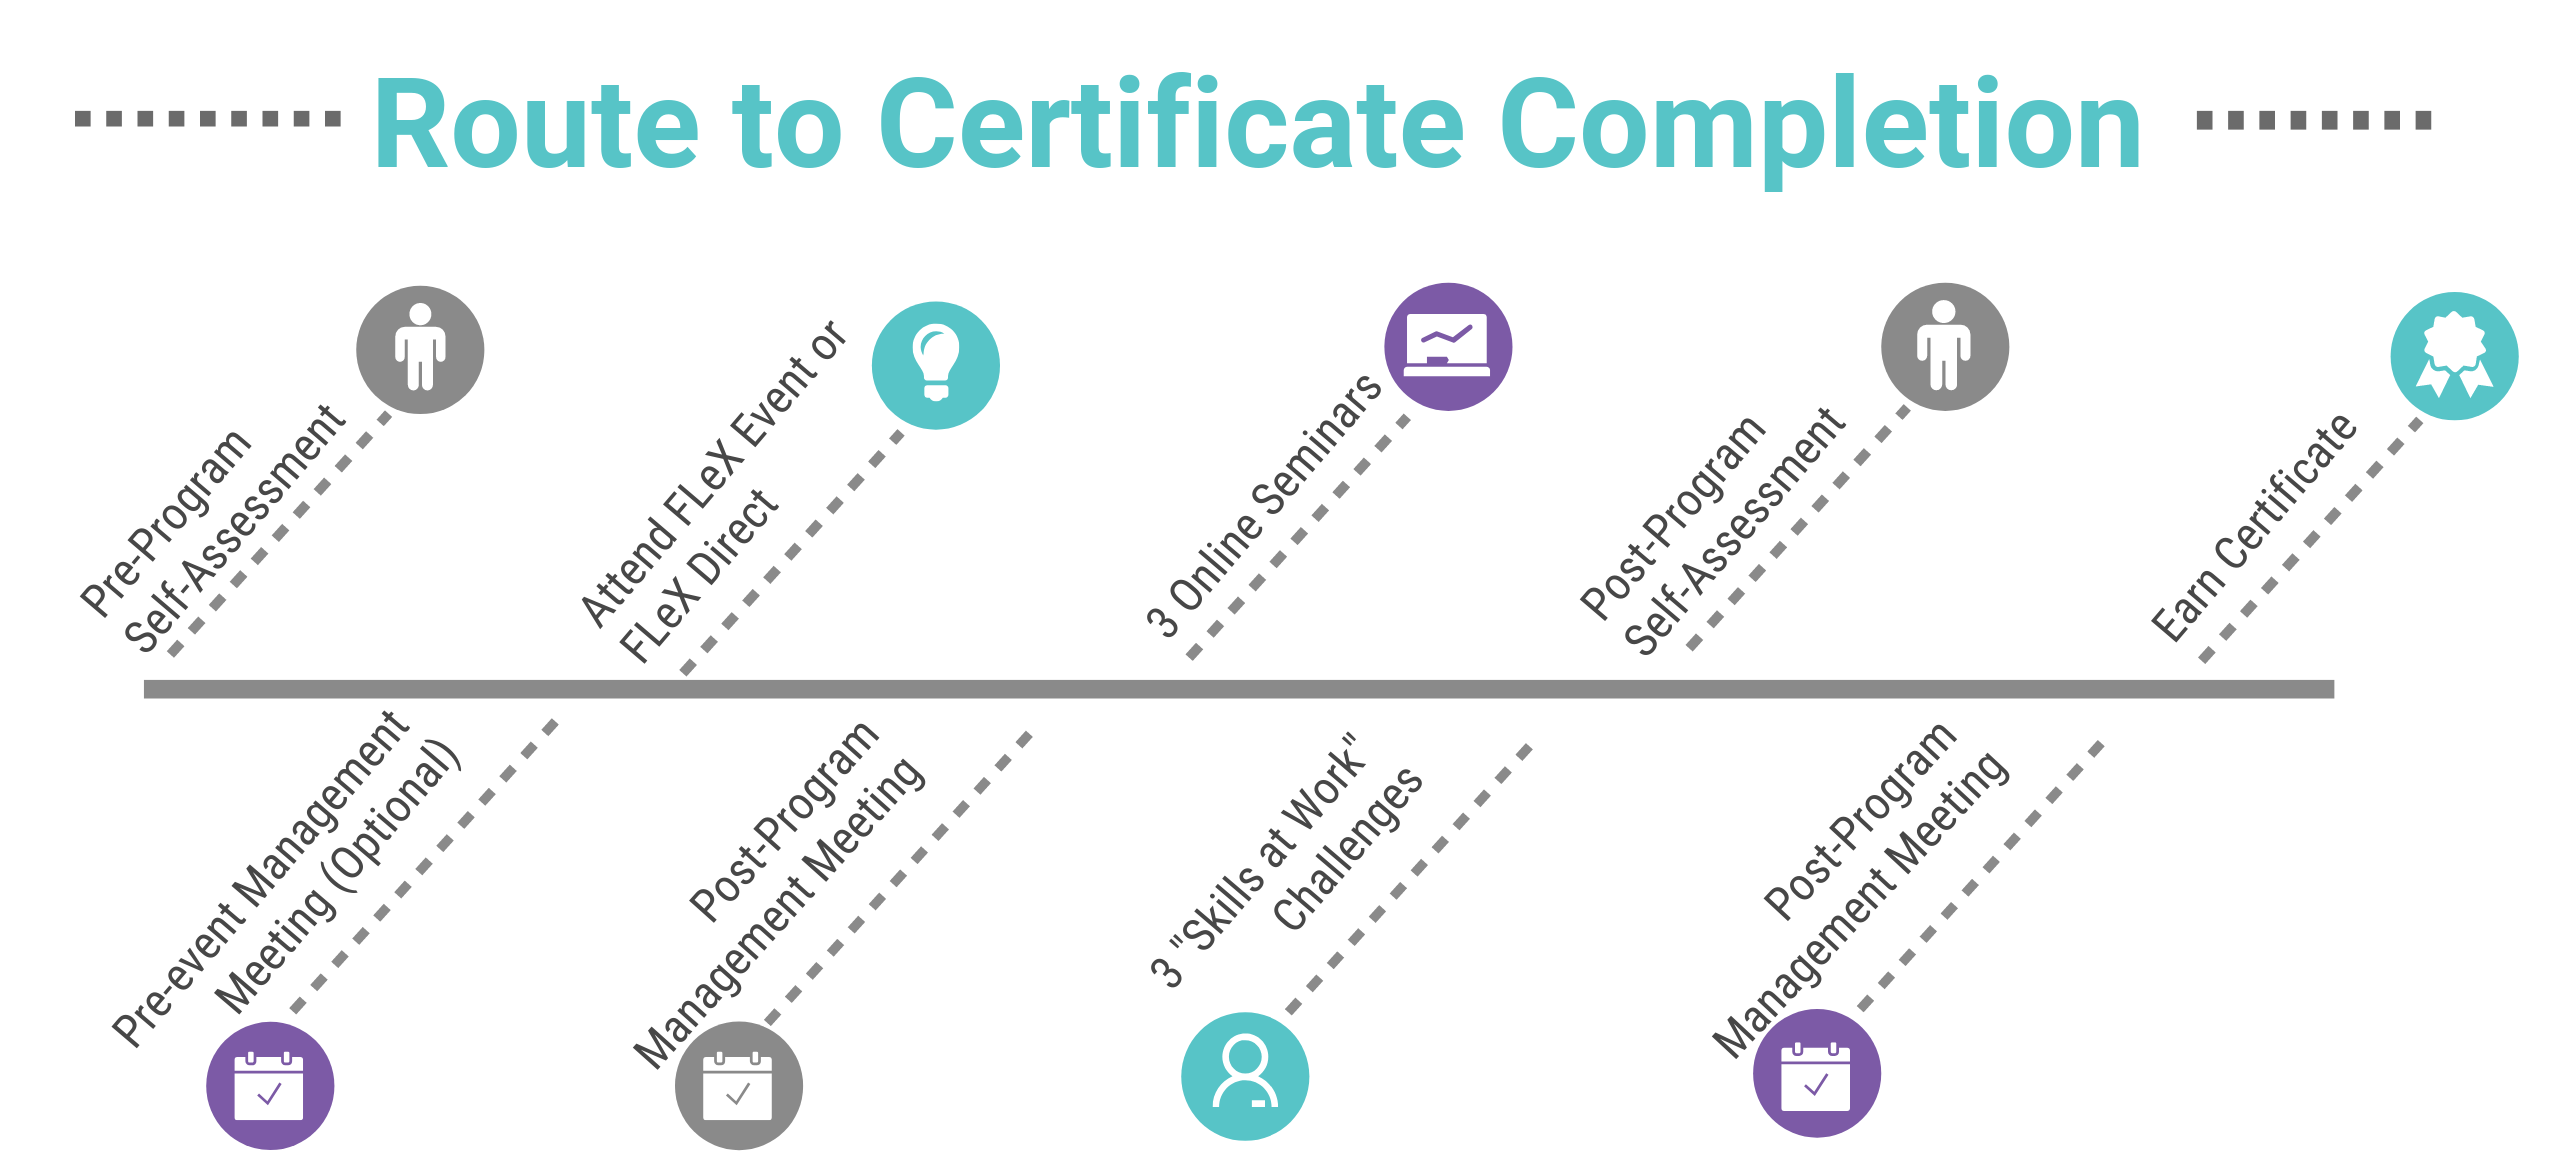 Route to Certificate